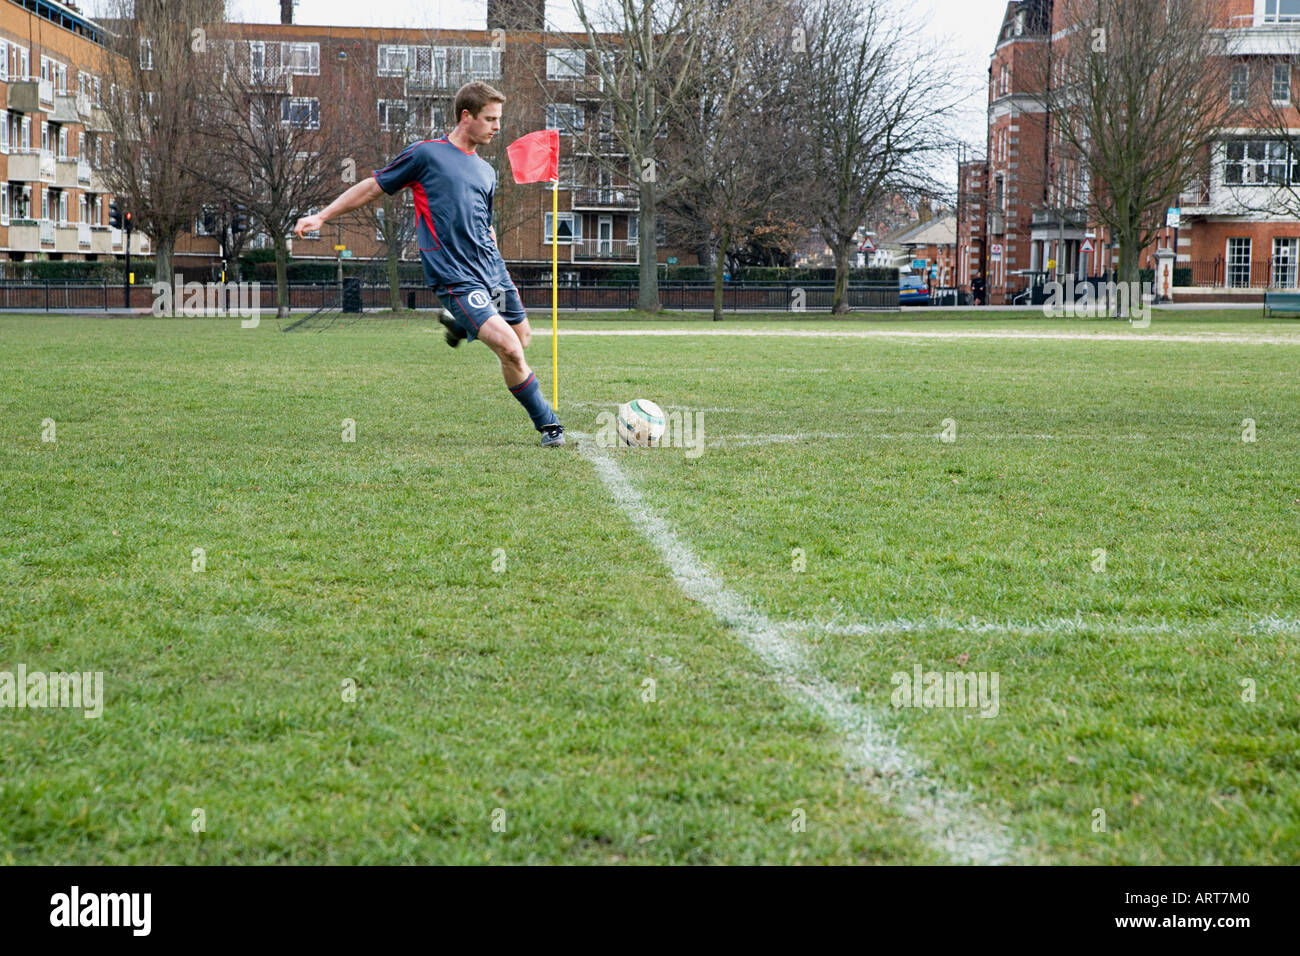 Footballer taking a corner - Stock Image